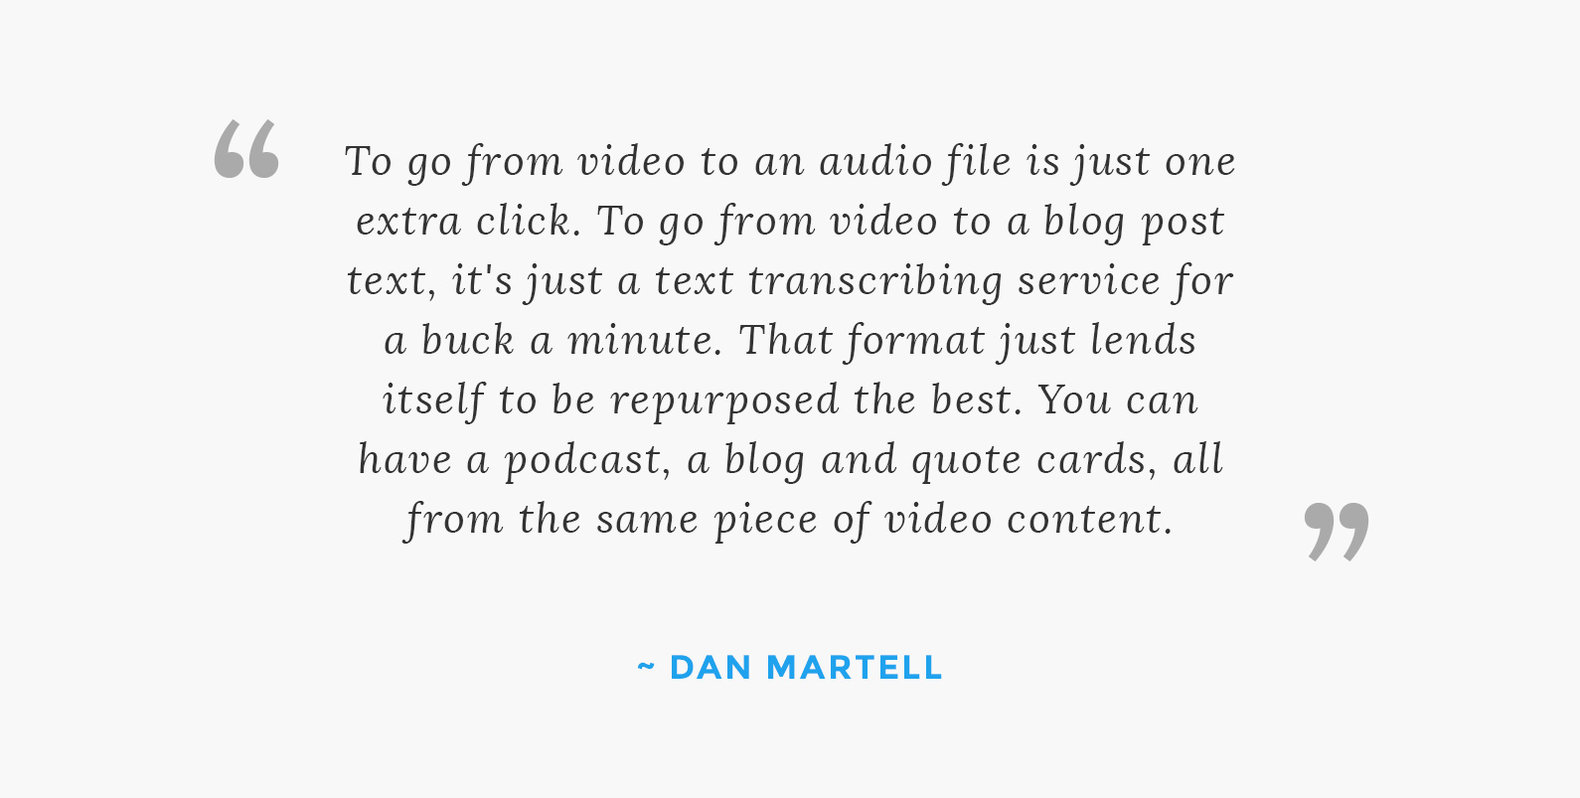 """To go from video to an audio file is just one extra click. To go from video to a blog post text, it's just a text transcribing service for a buck a minute. That format just lends itself to be repurposed the best. You can have a podcast, a blog and quote cards, all from the same piece of video content"""